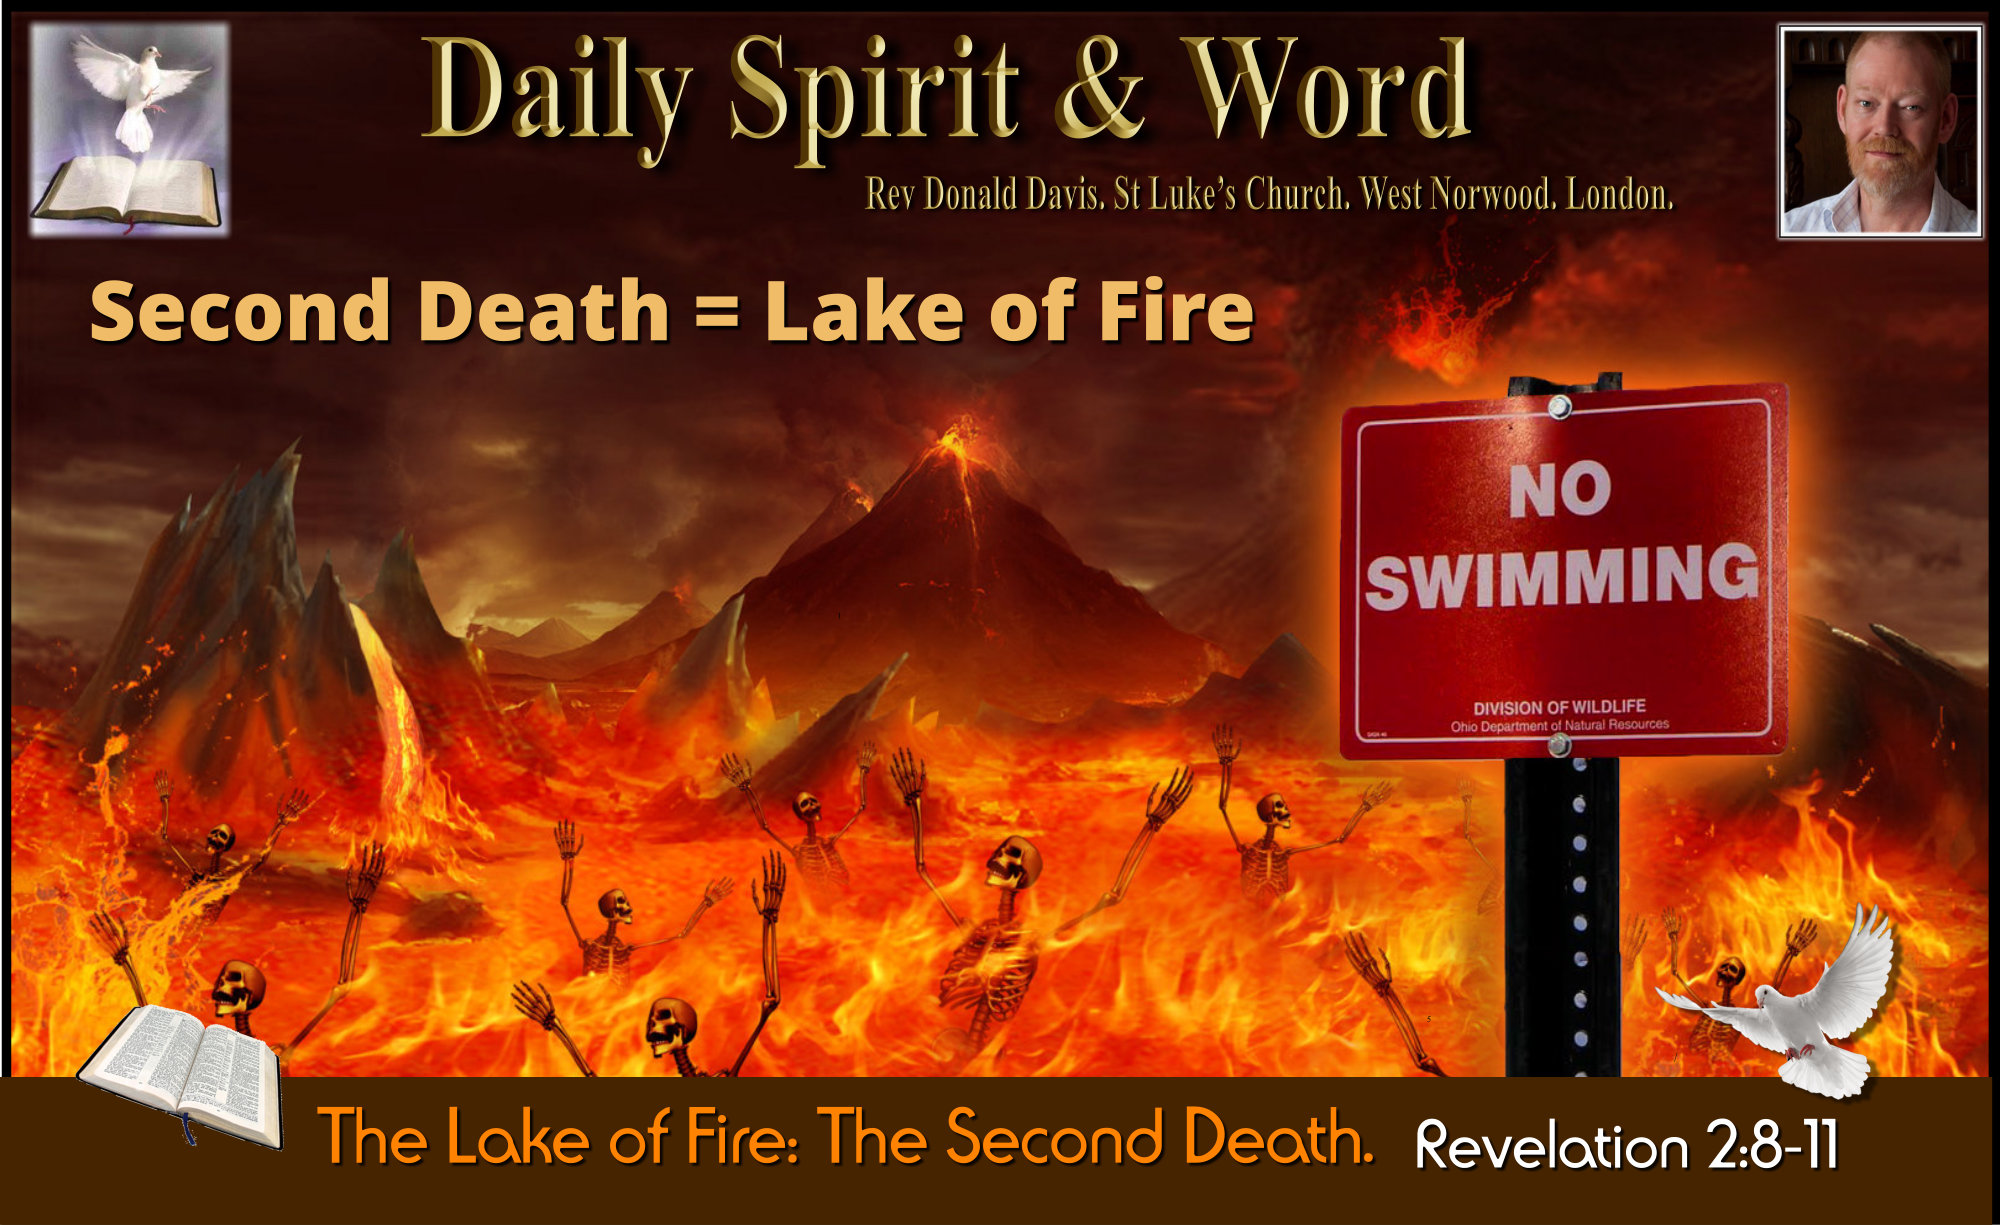 The Lake of Fire and The Second Death